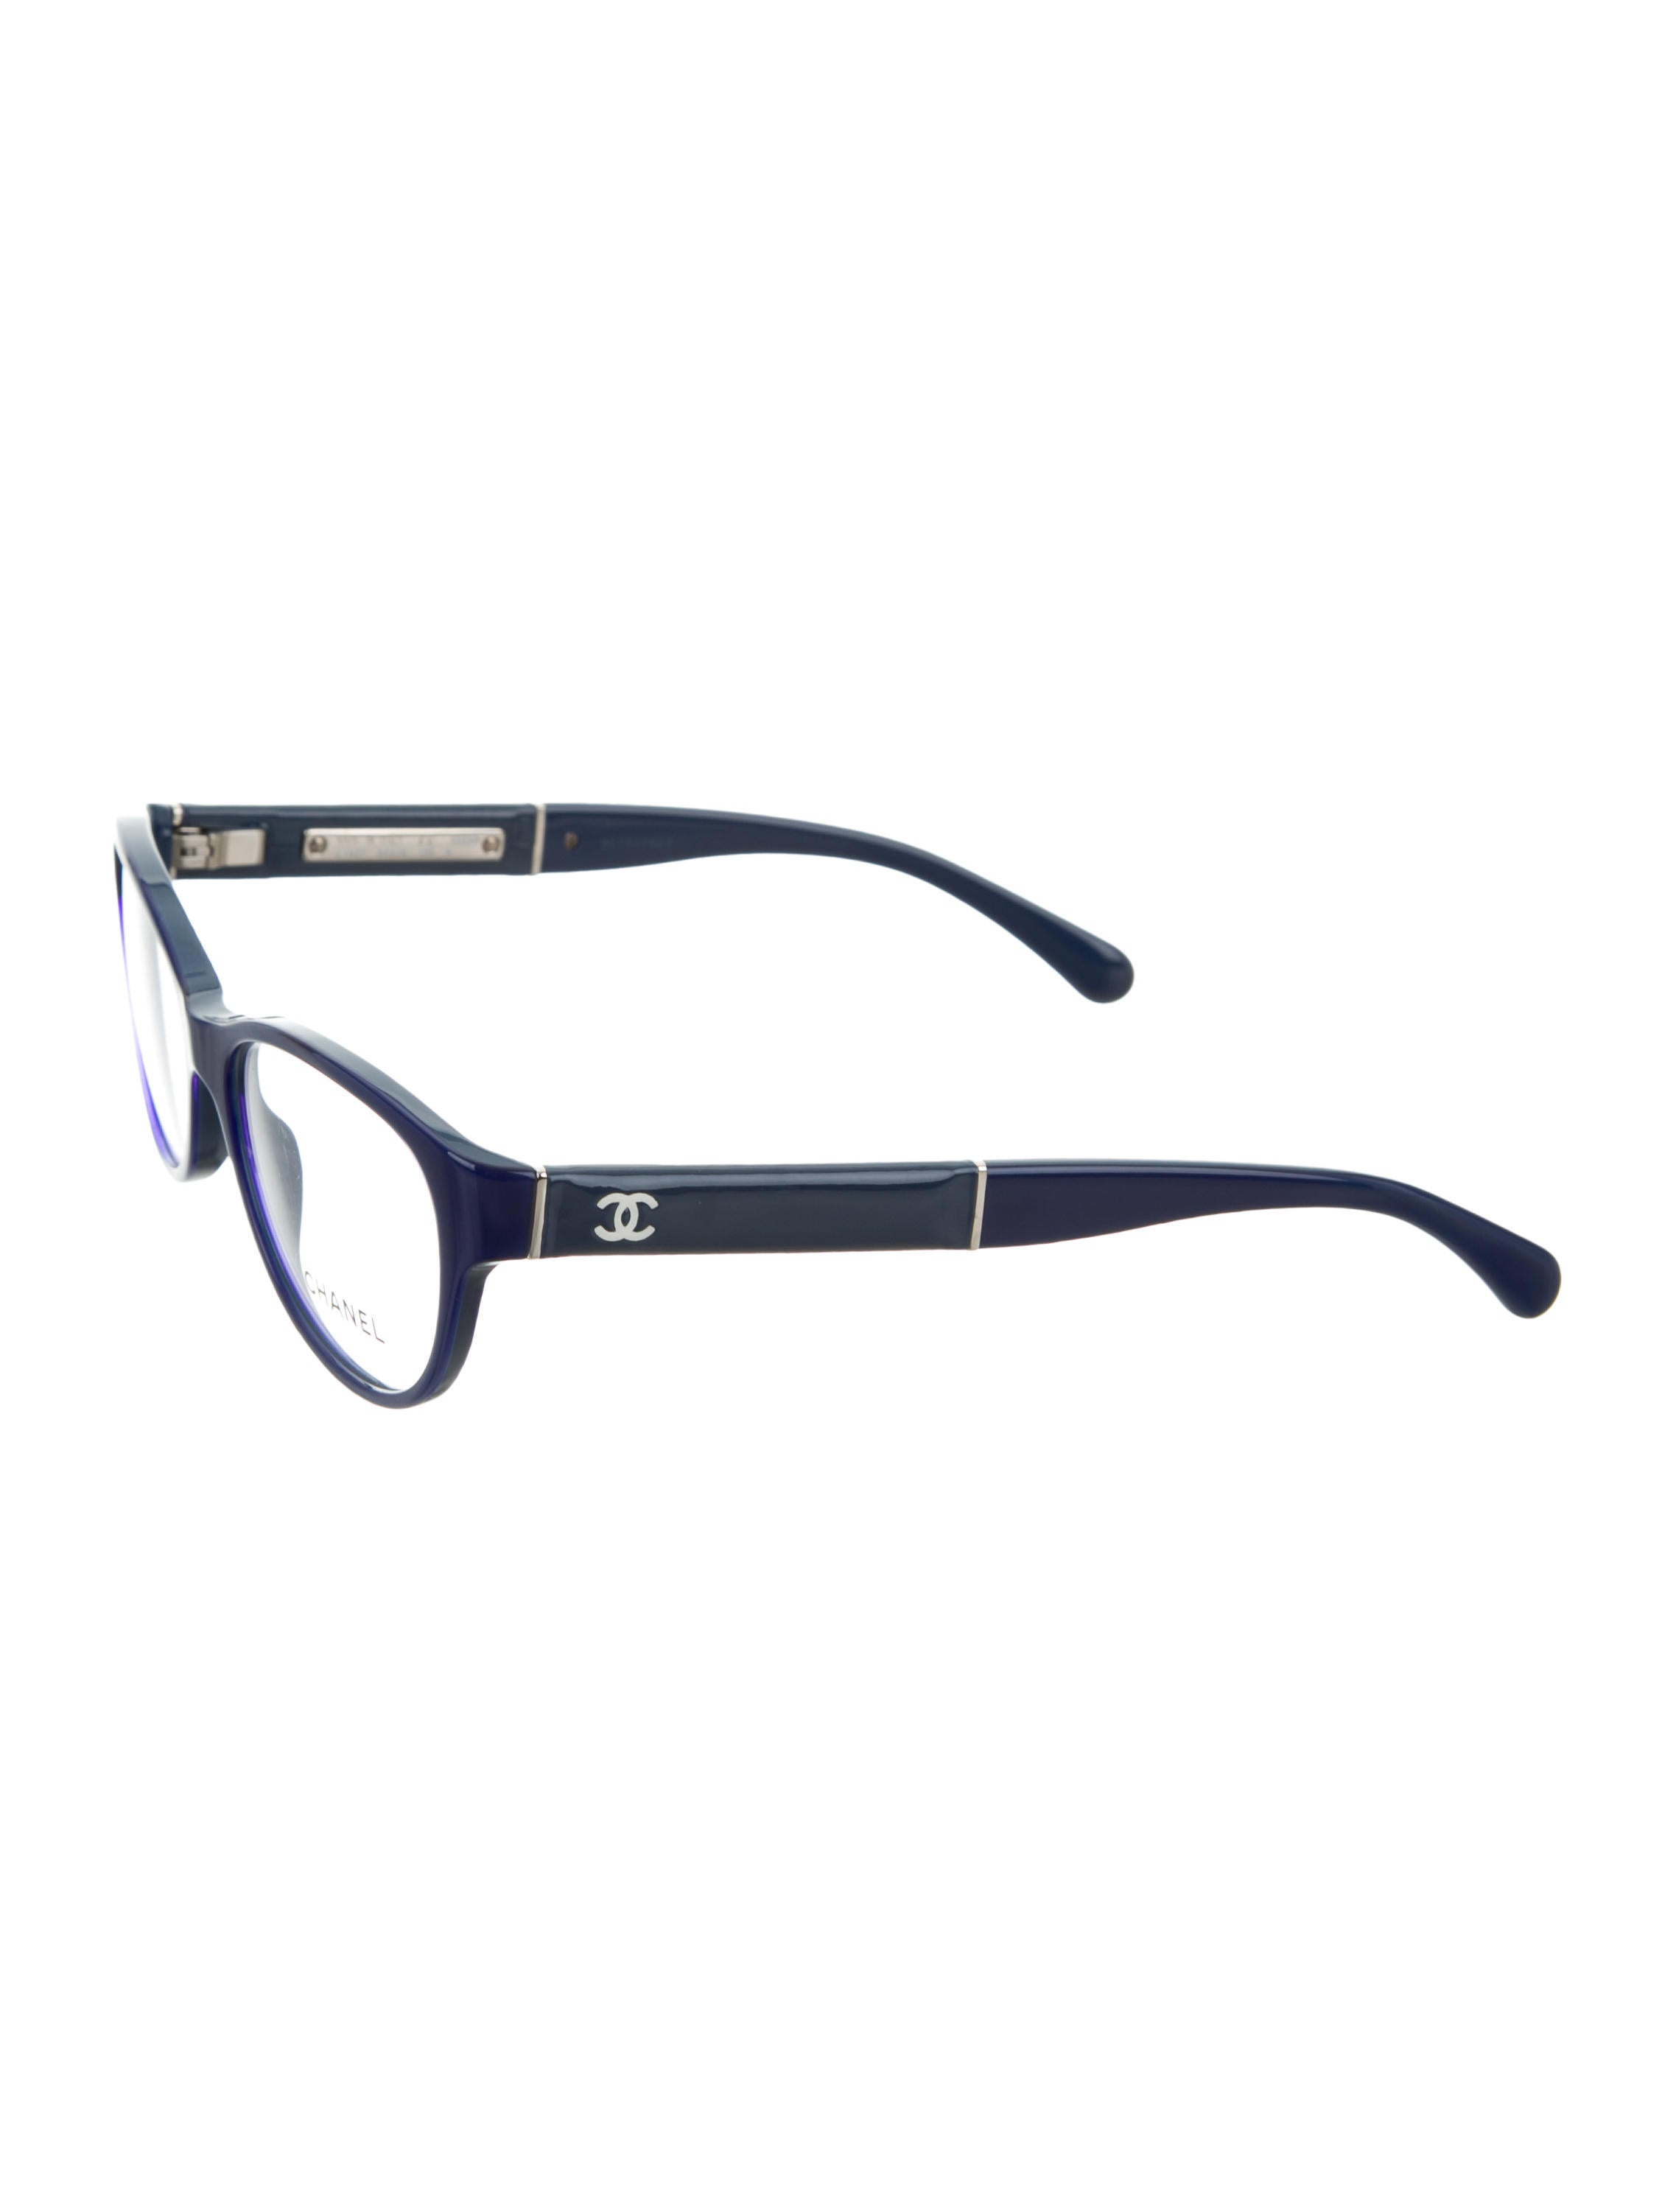 Chanel CC Bicolor Eyeglasses w/ Tags - Accessories ...